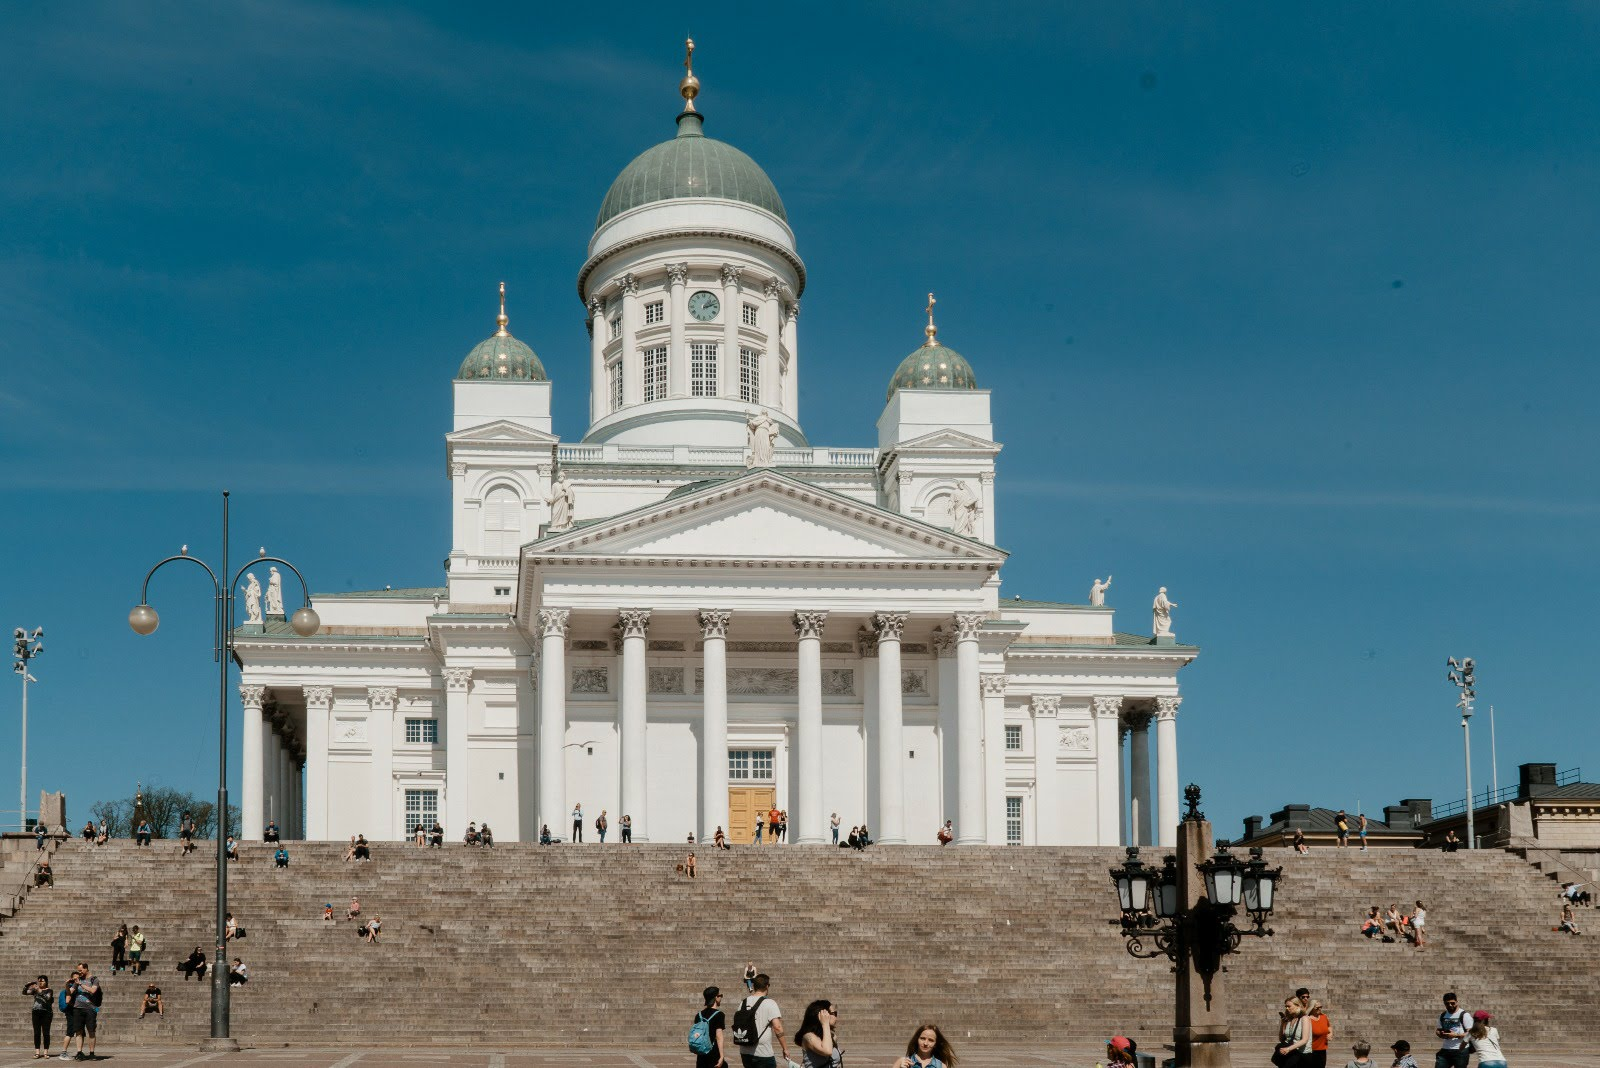 Finland Summer Travel Guide: Five Things to Do in Helsinki 1